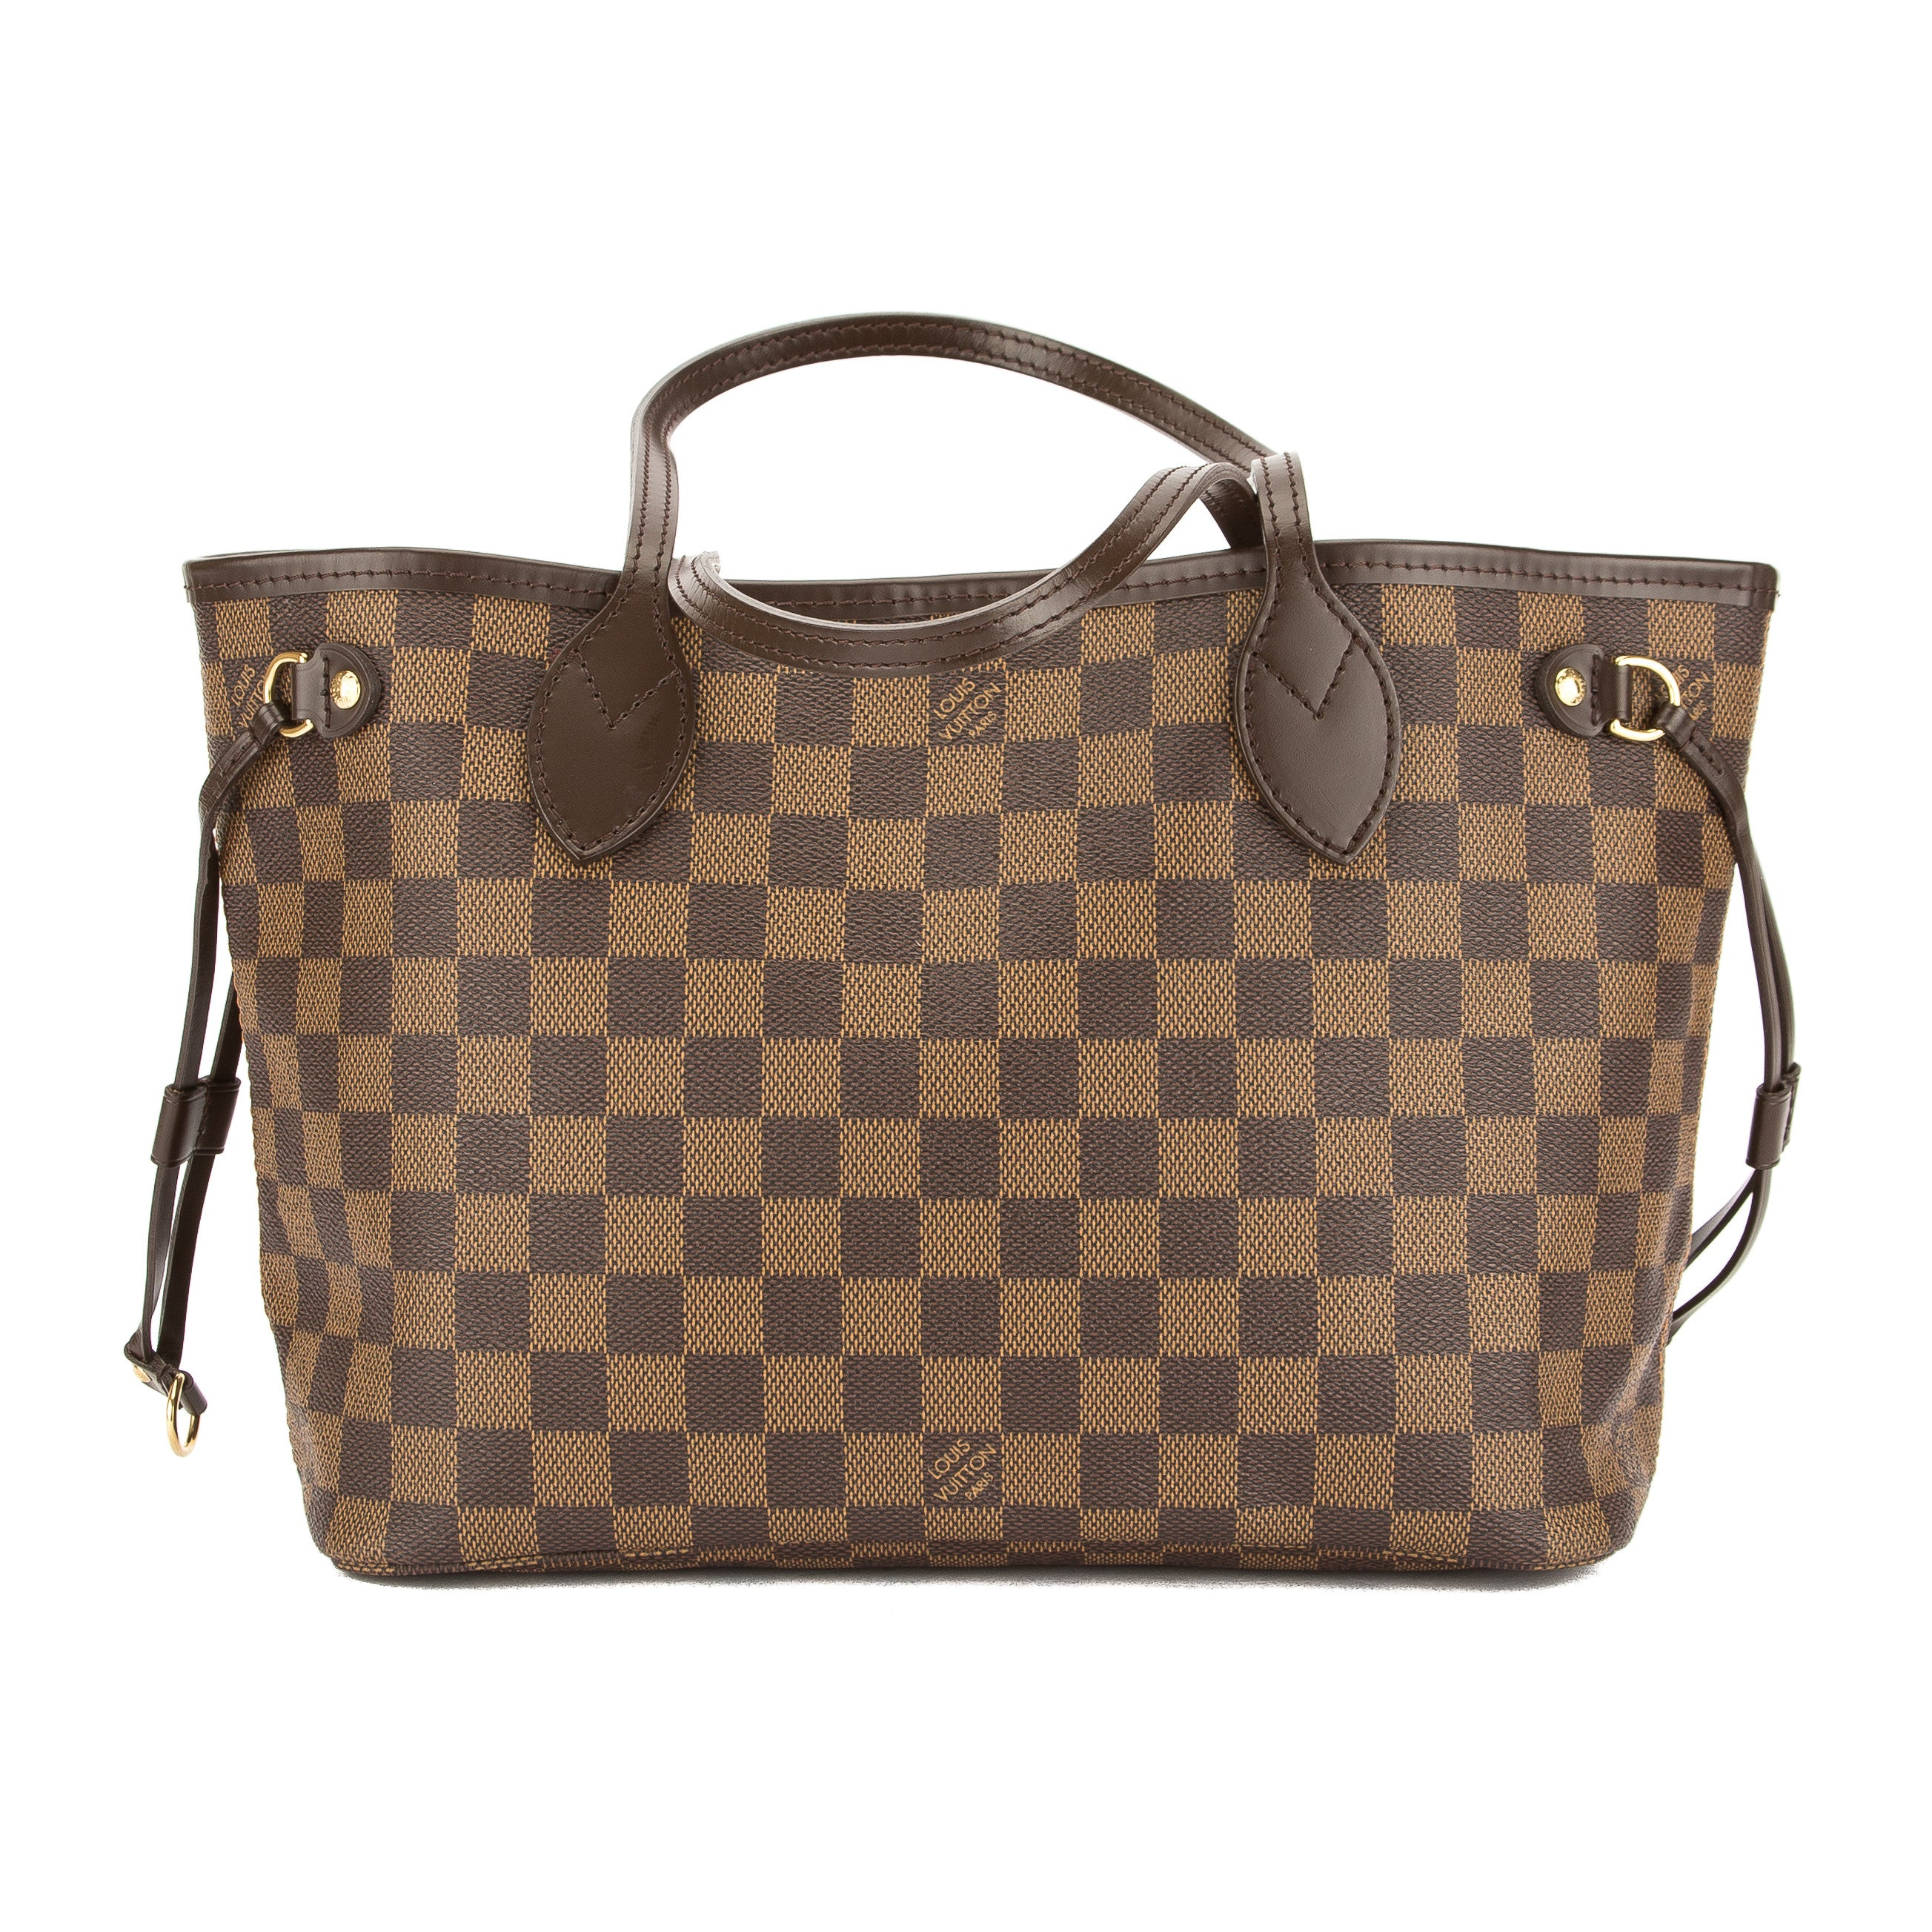 4c6889b5518a Louis Vuitton Damier Ebene Canvas Neverfull PM Bag (Pre Owned ...